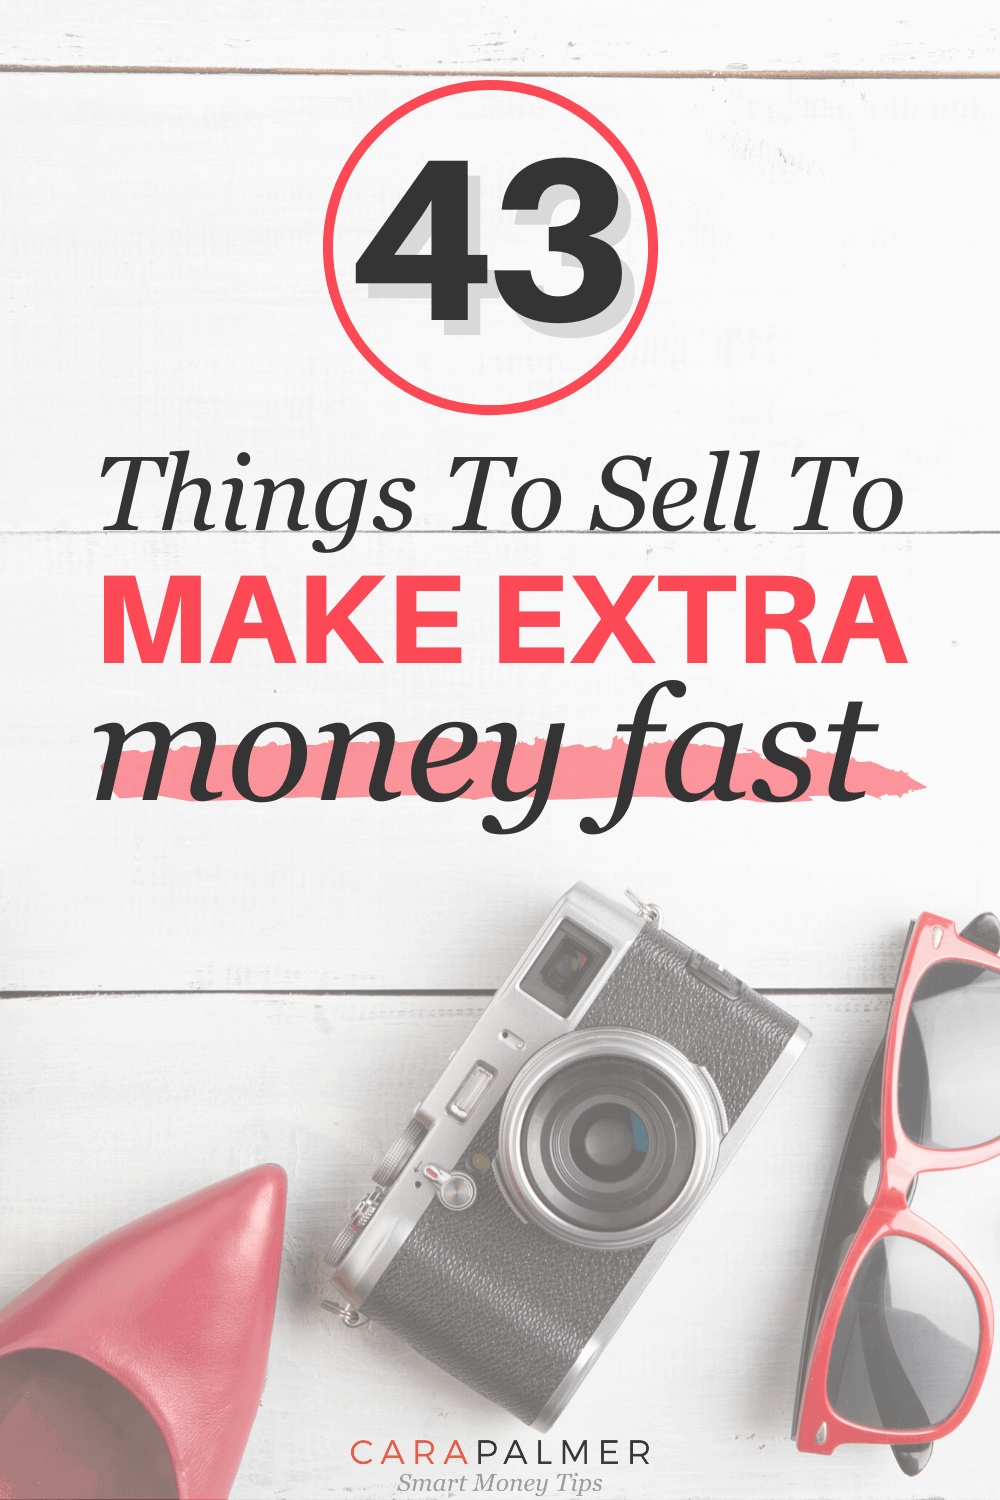 Earn money quickly with this list of things to sell